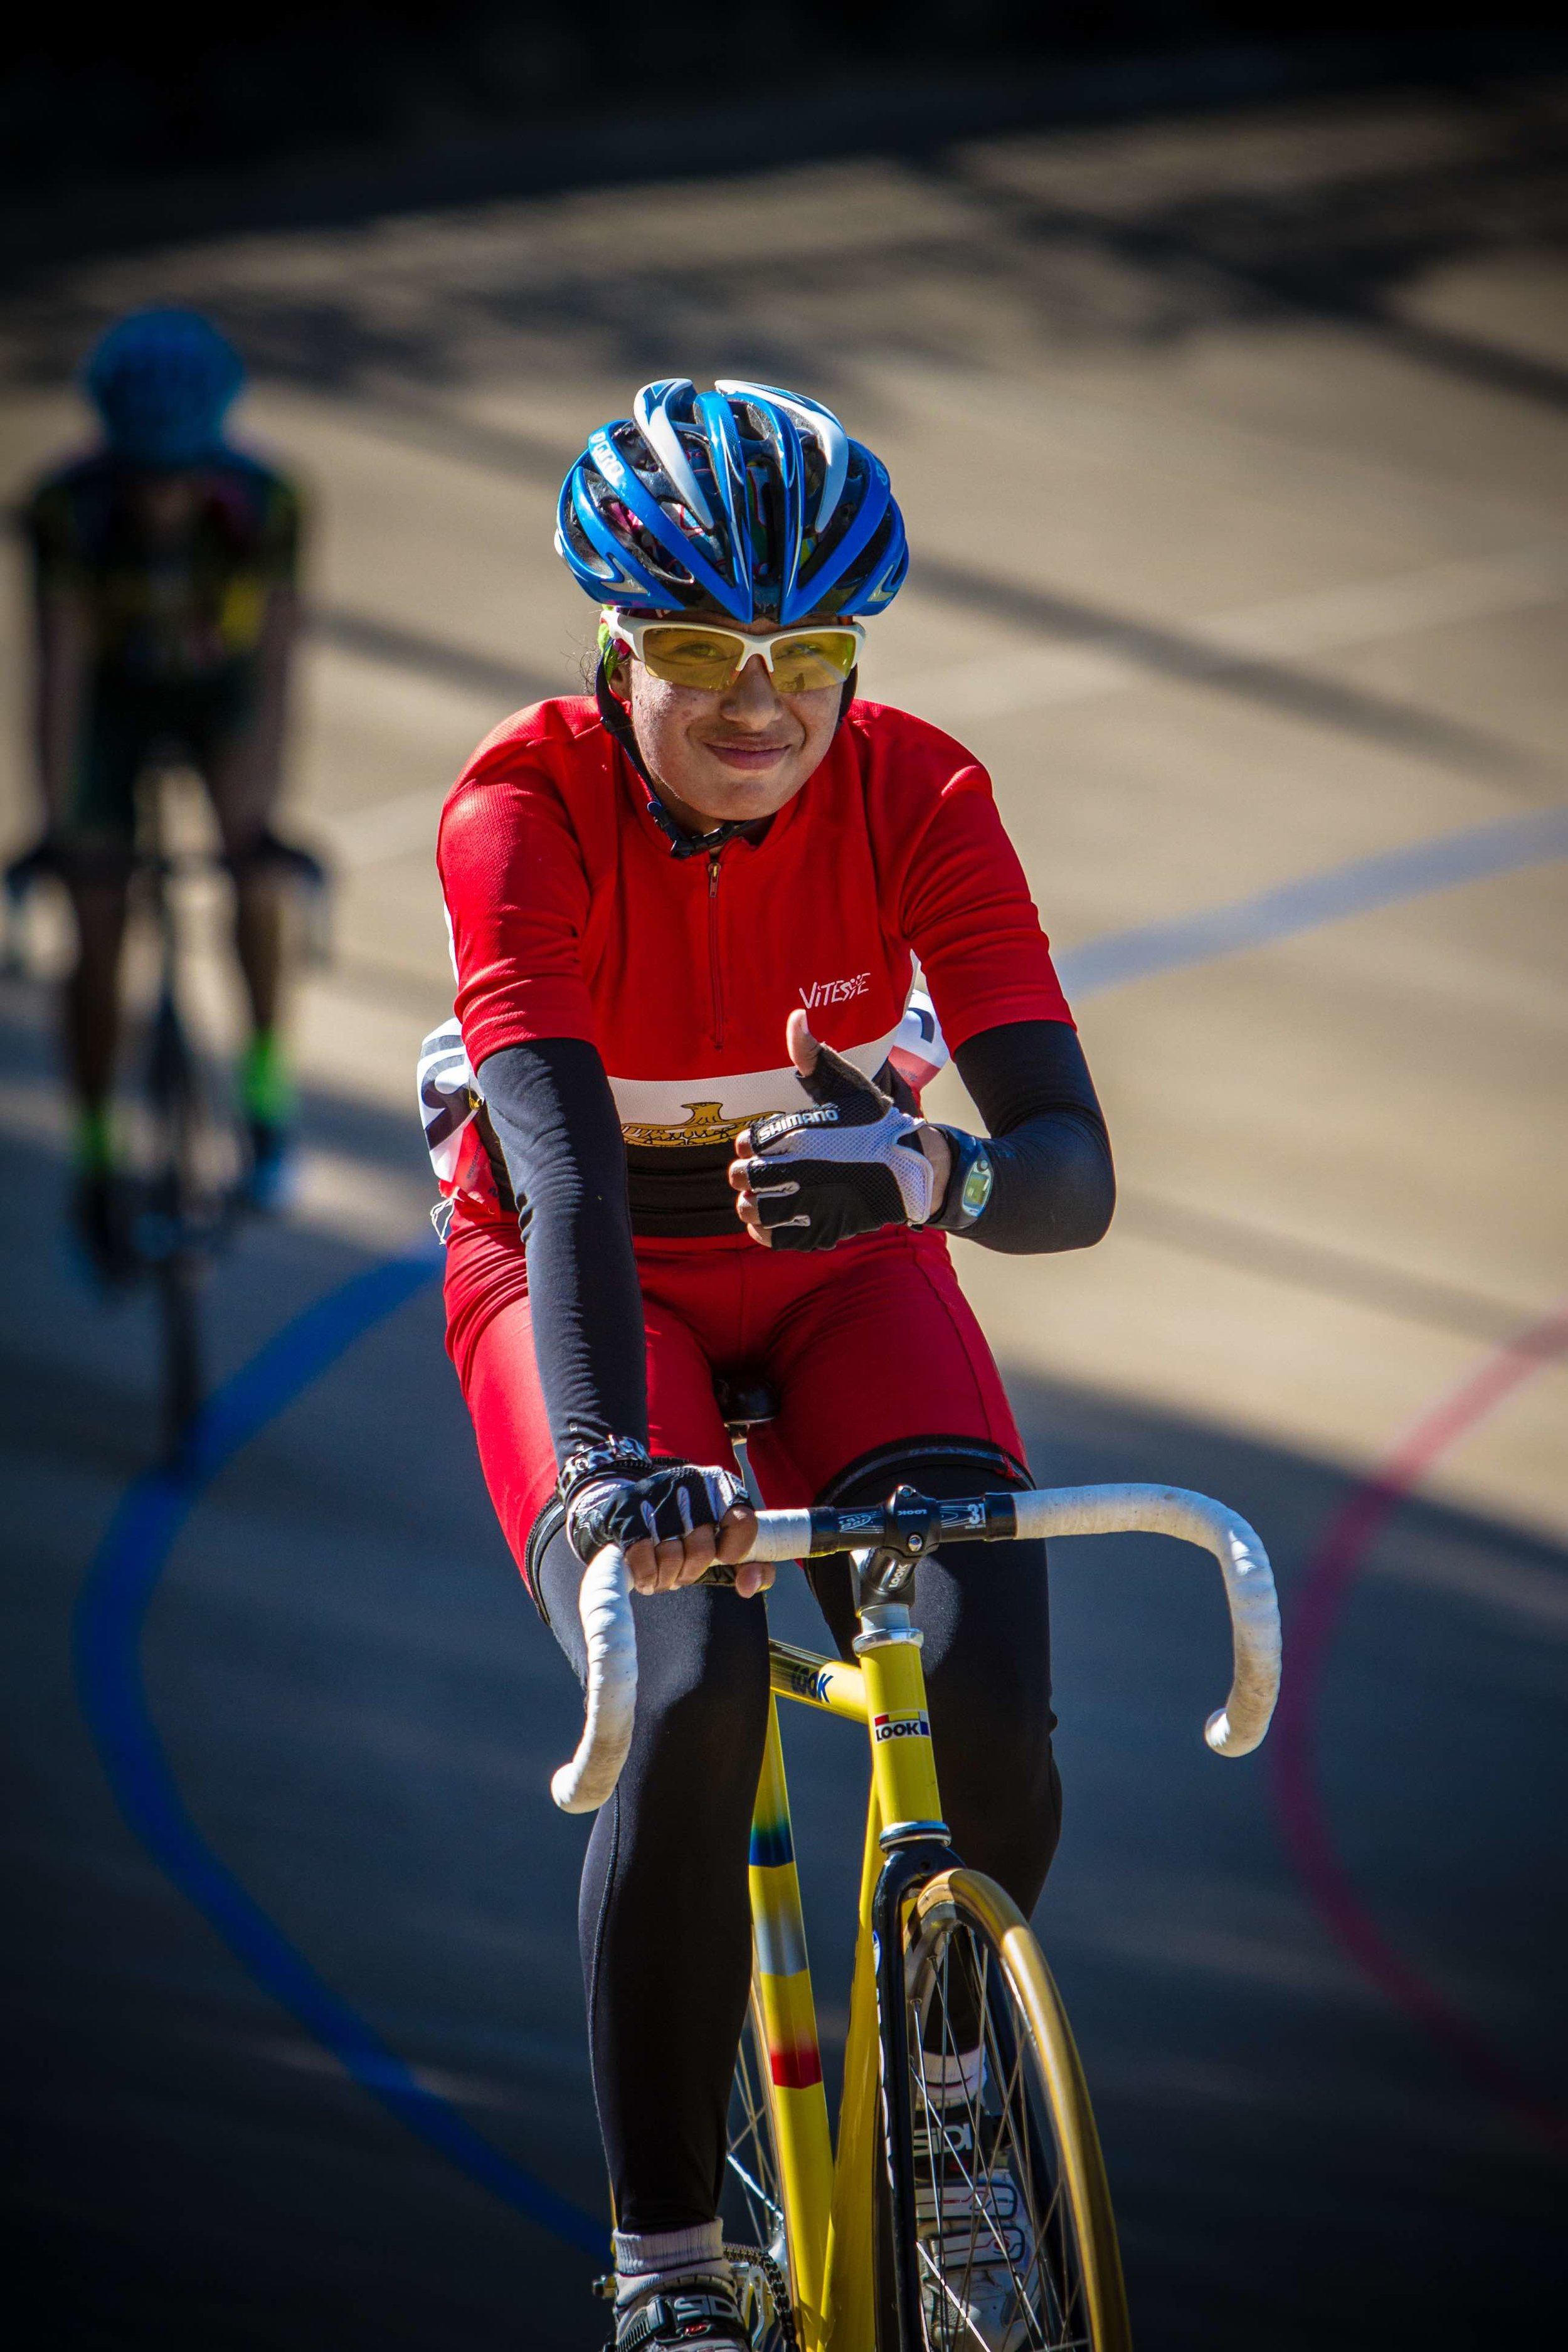 2016 Olympian Ebtissam Zayed from Egypt will be taking part in the African Continental Track cycling Championships at the Cyril Geoghegan Velodrome in Durban from 20-24 March 2017. Photo: Craig Dutton